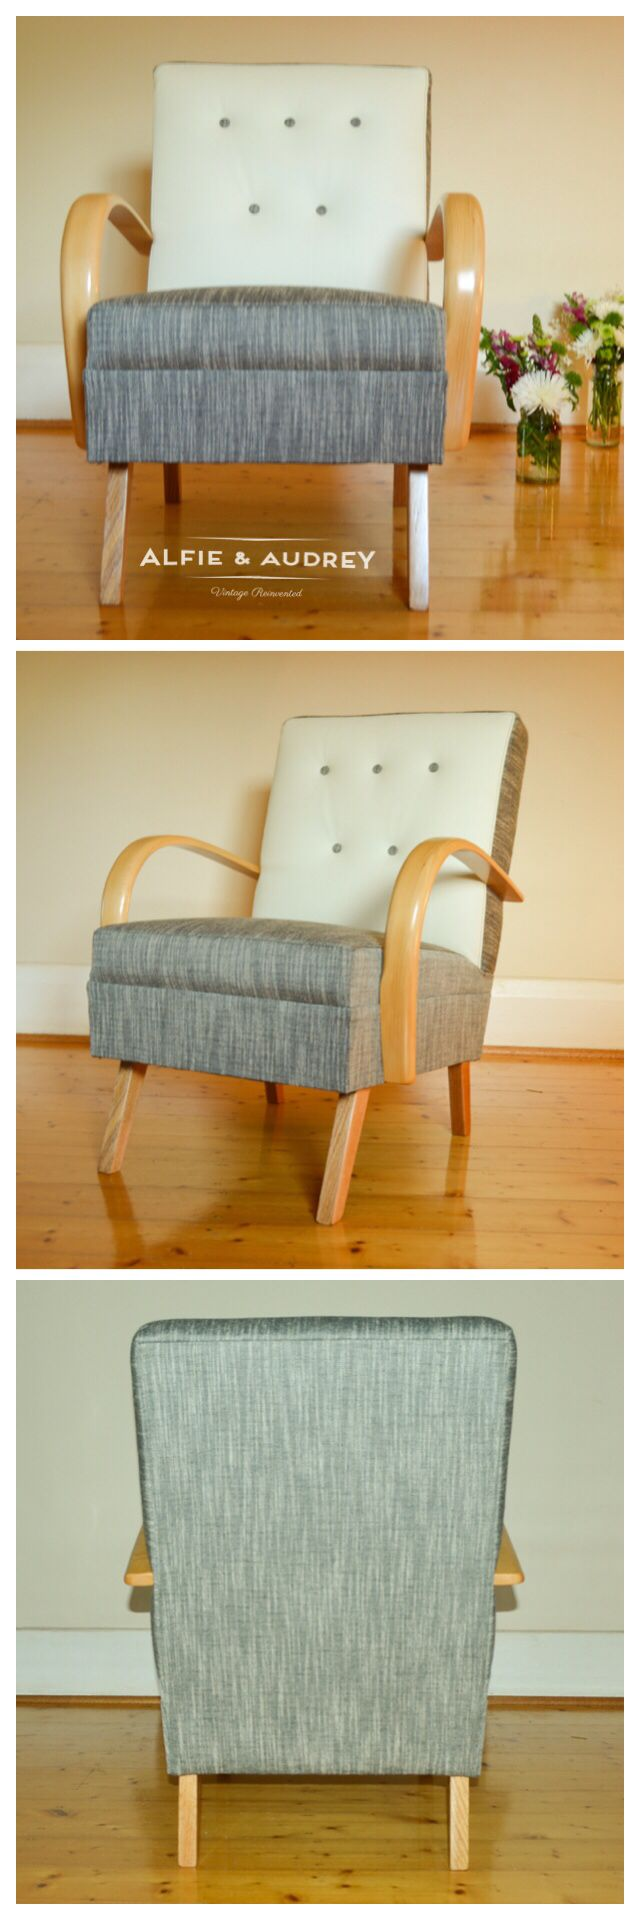 Our Cosette chair is online now @ www.alfieandaudrey.com.au